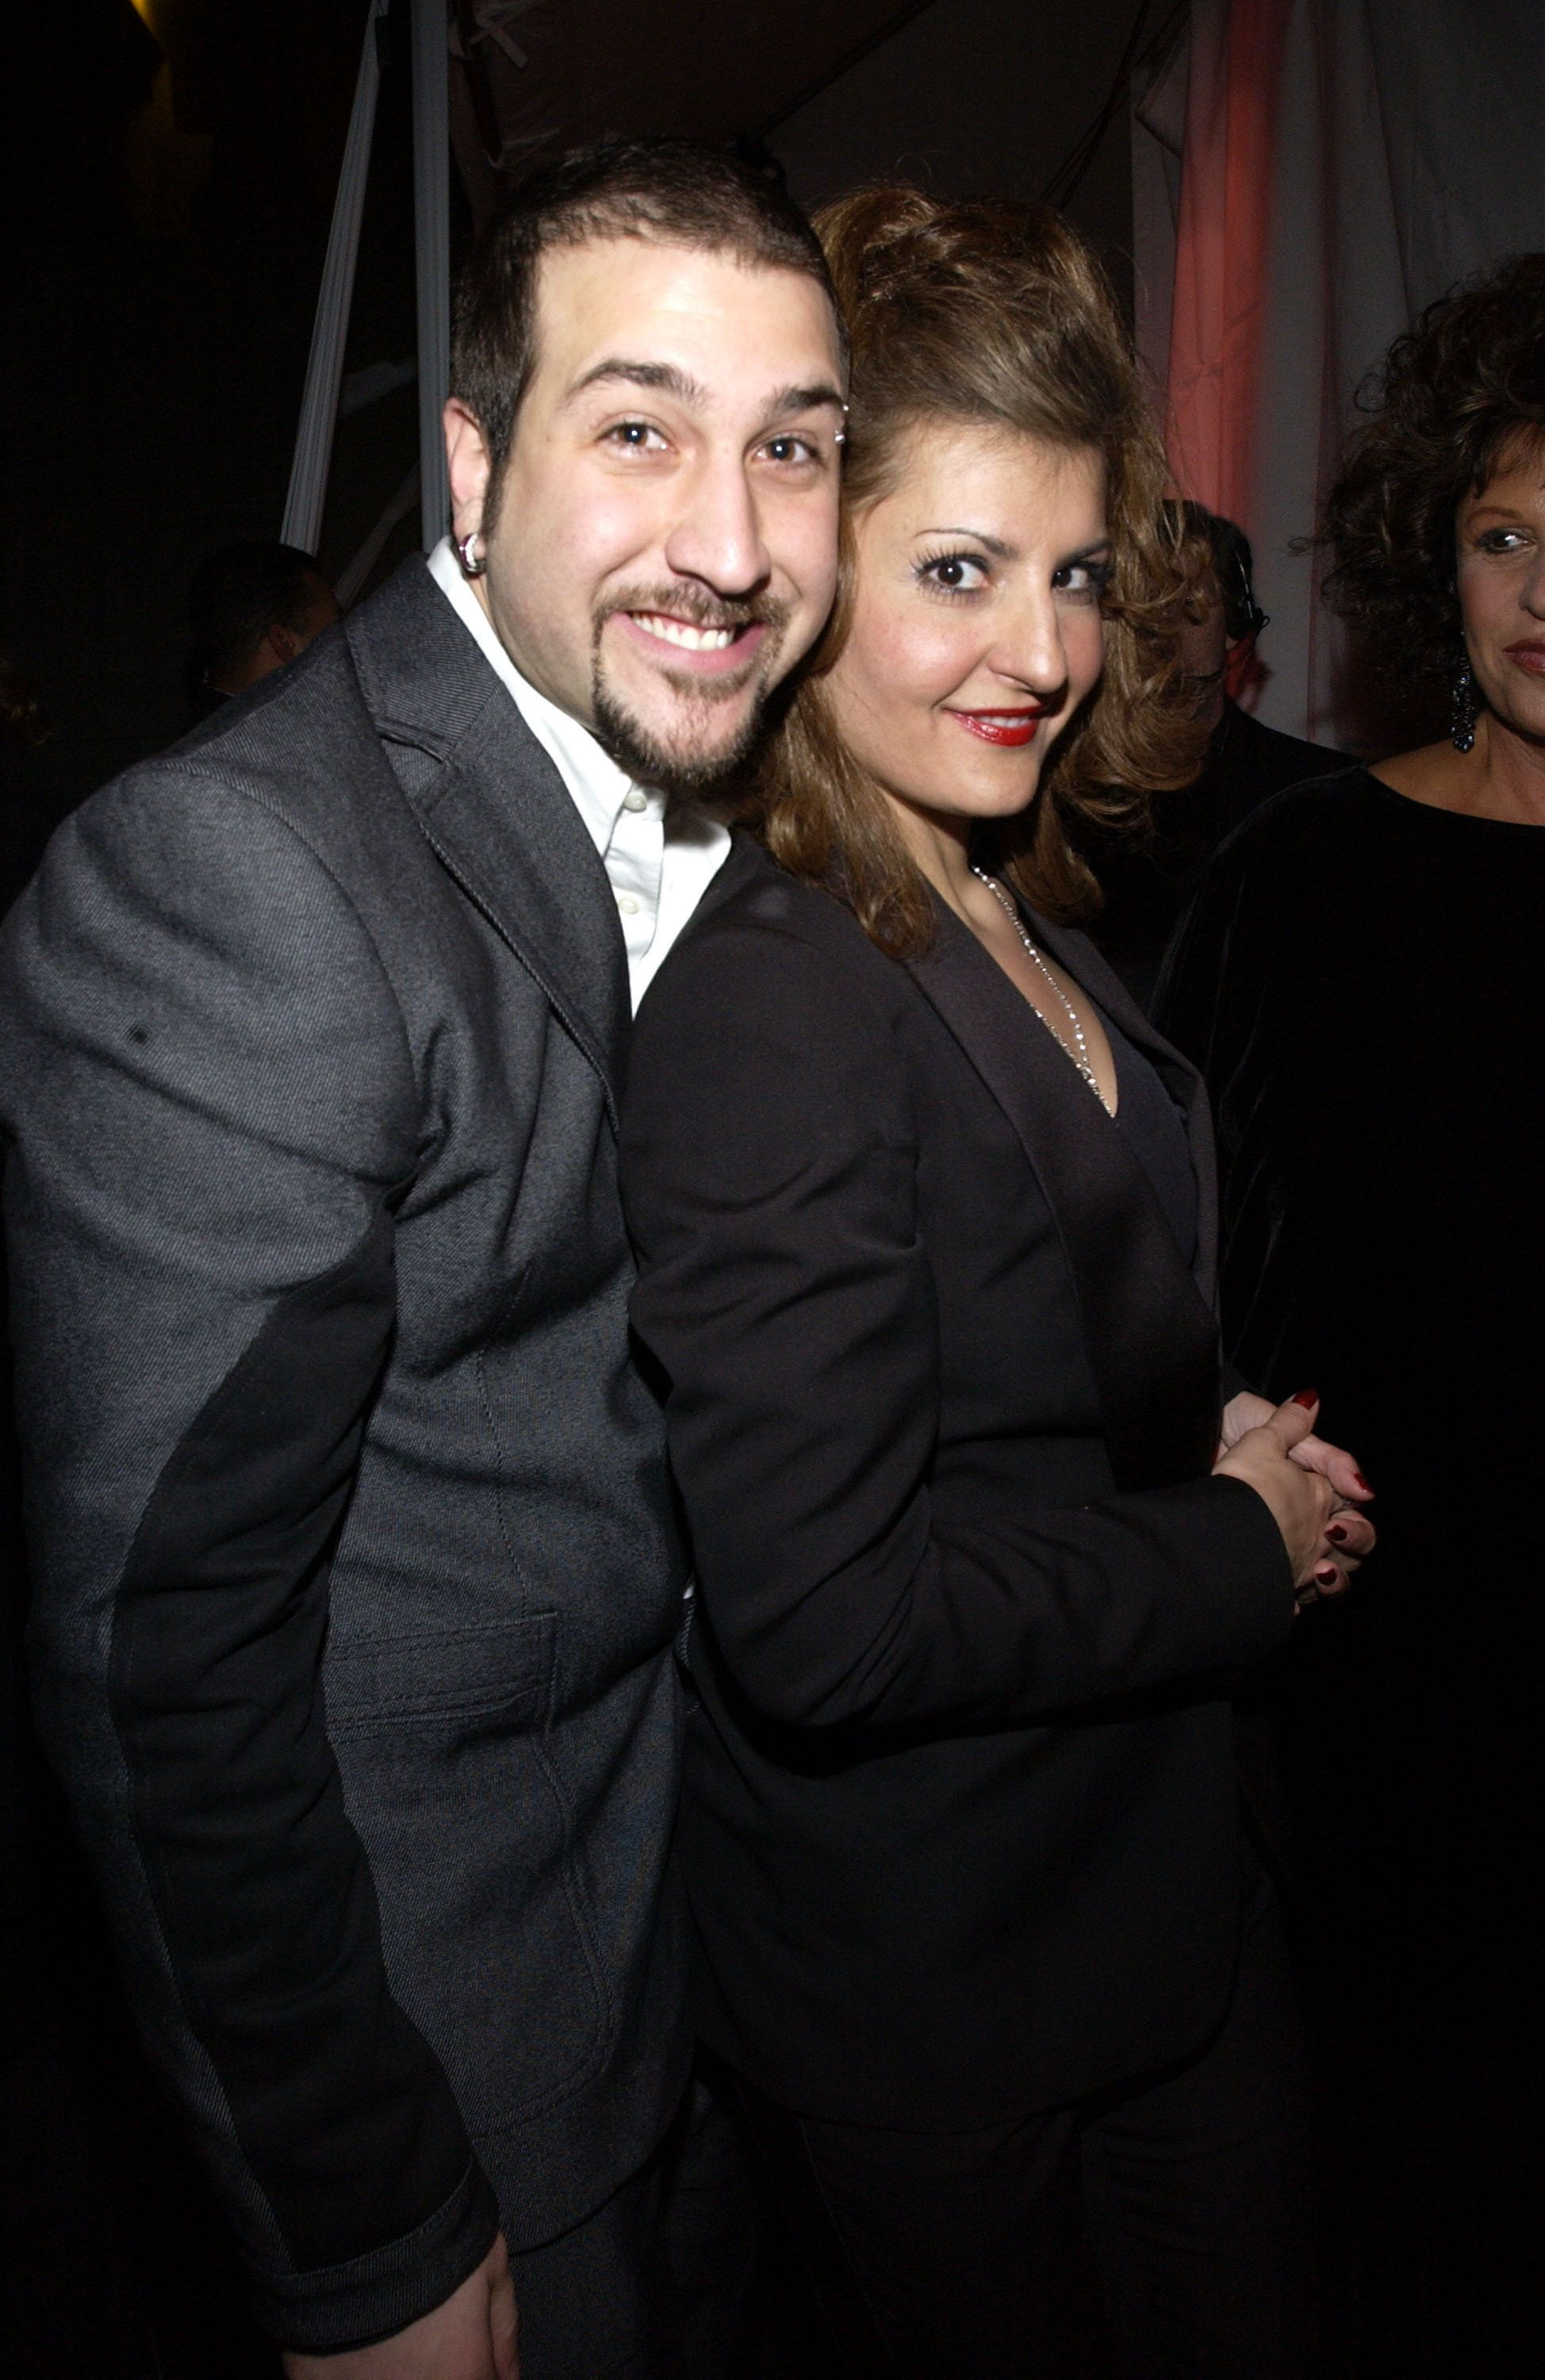 Joey Fatone and Nia Vardalos during The 29th Annual People's Choice Awards - Backstage and Audience at Pasadena Civic Auditorium in Pasadena, California, United States. (Photo by KMazur/WireImage)